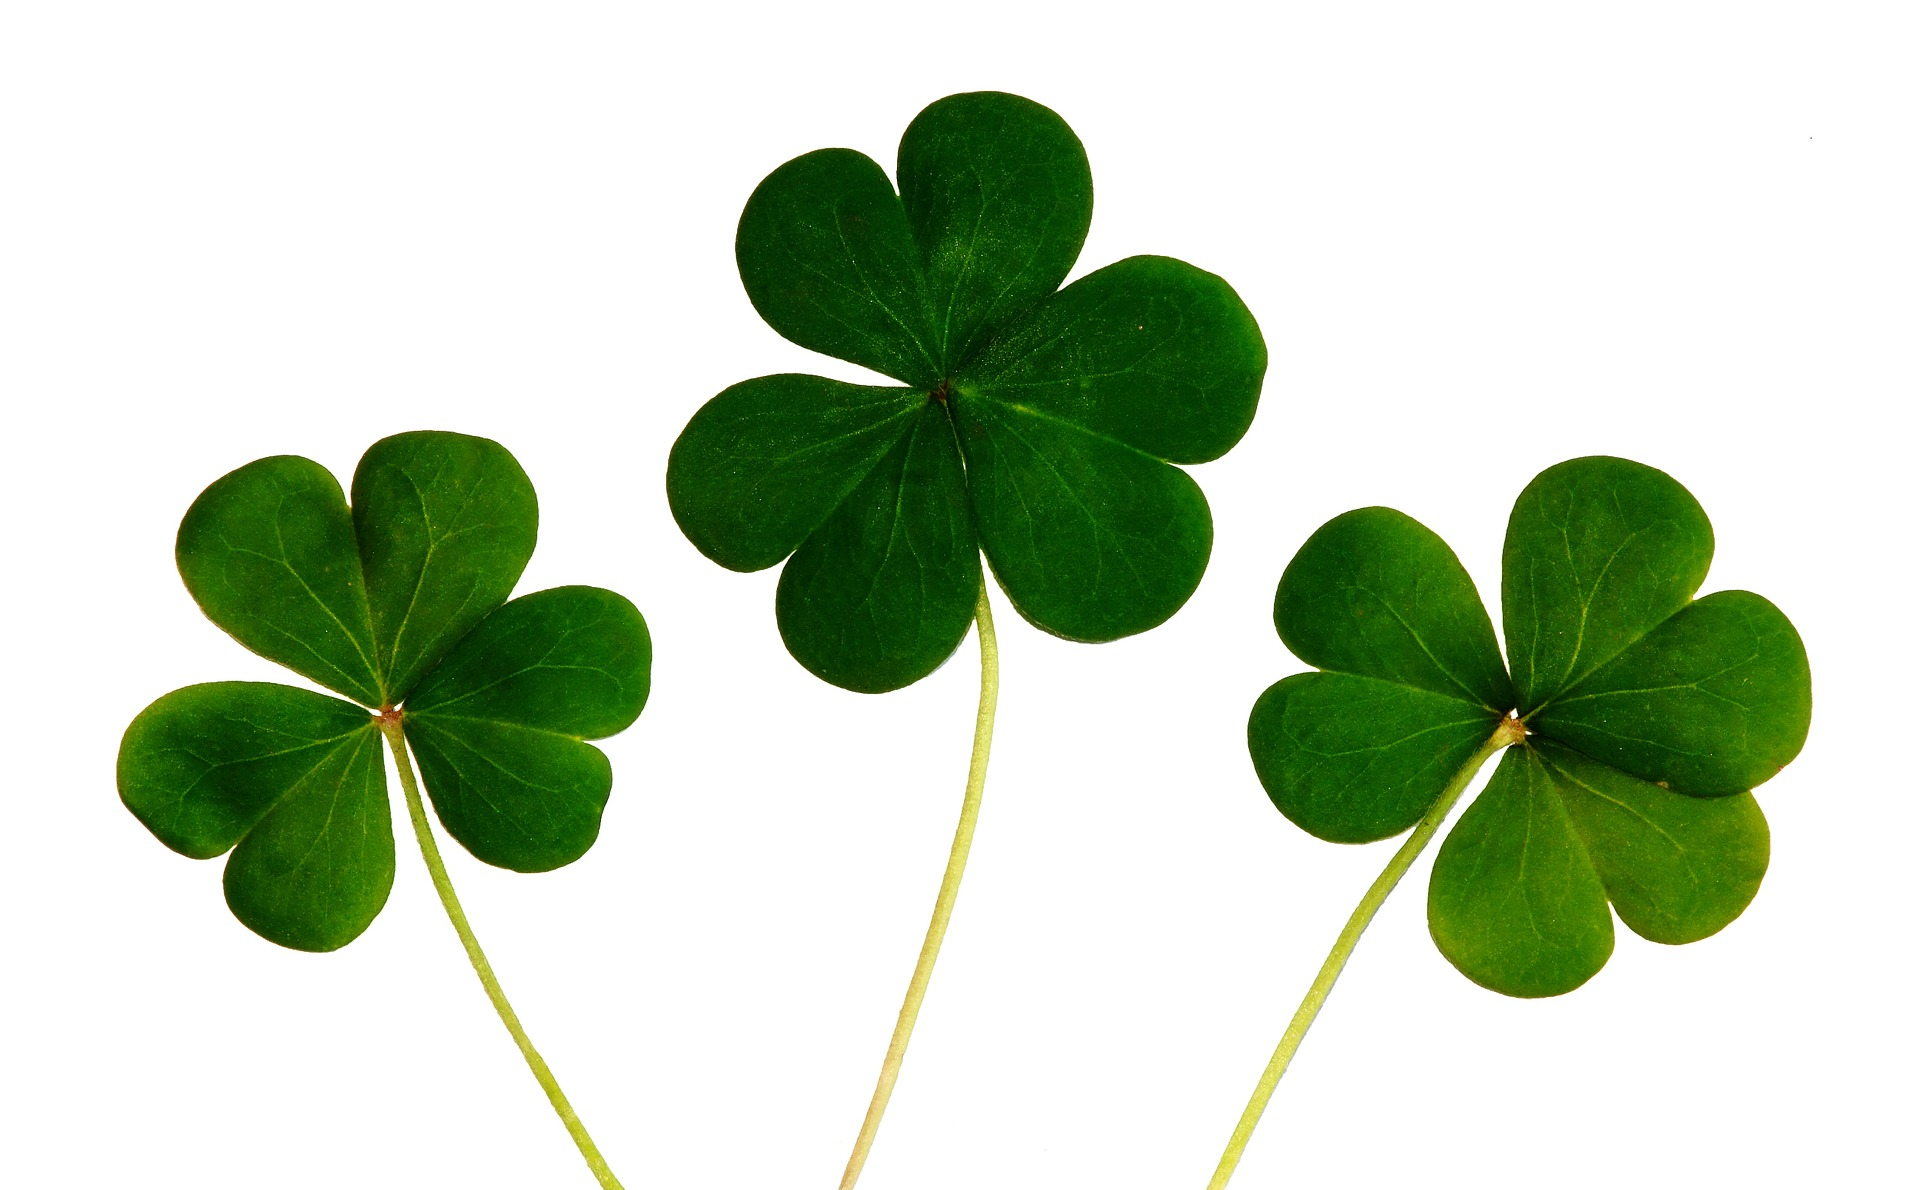 yhree green clovers